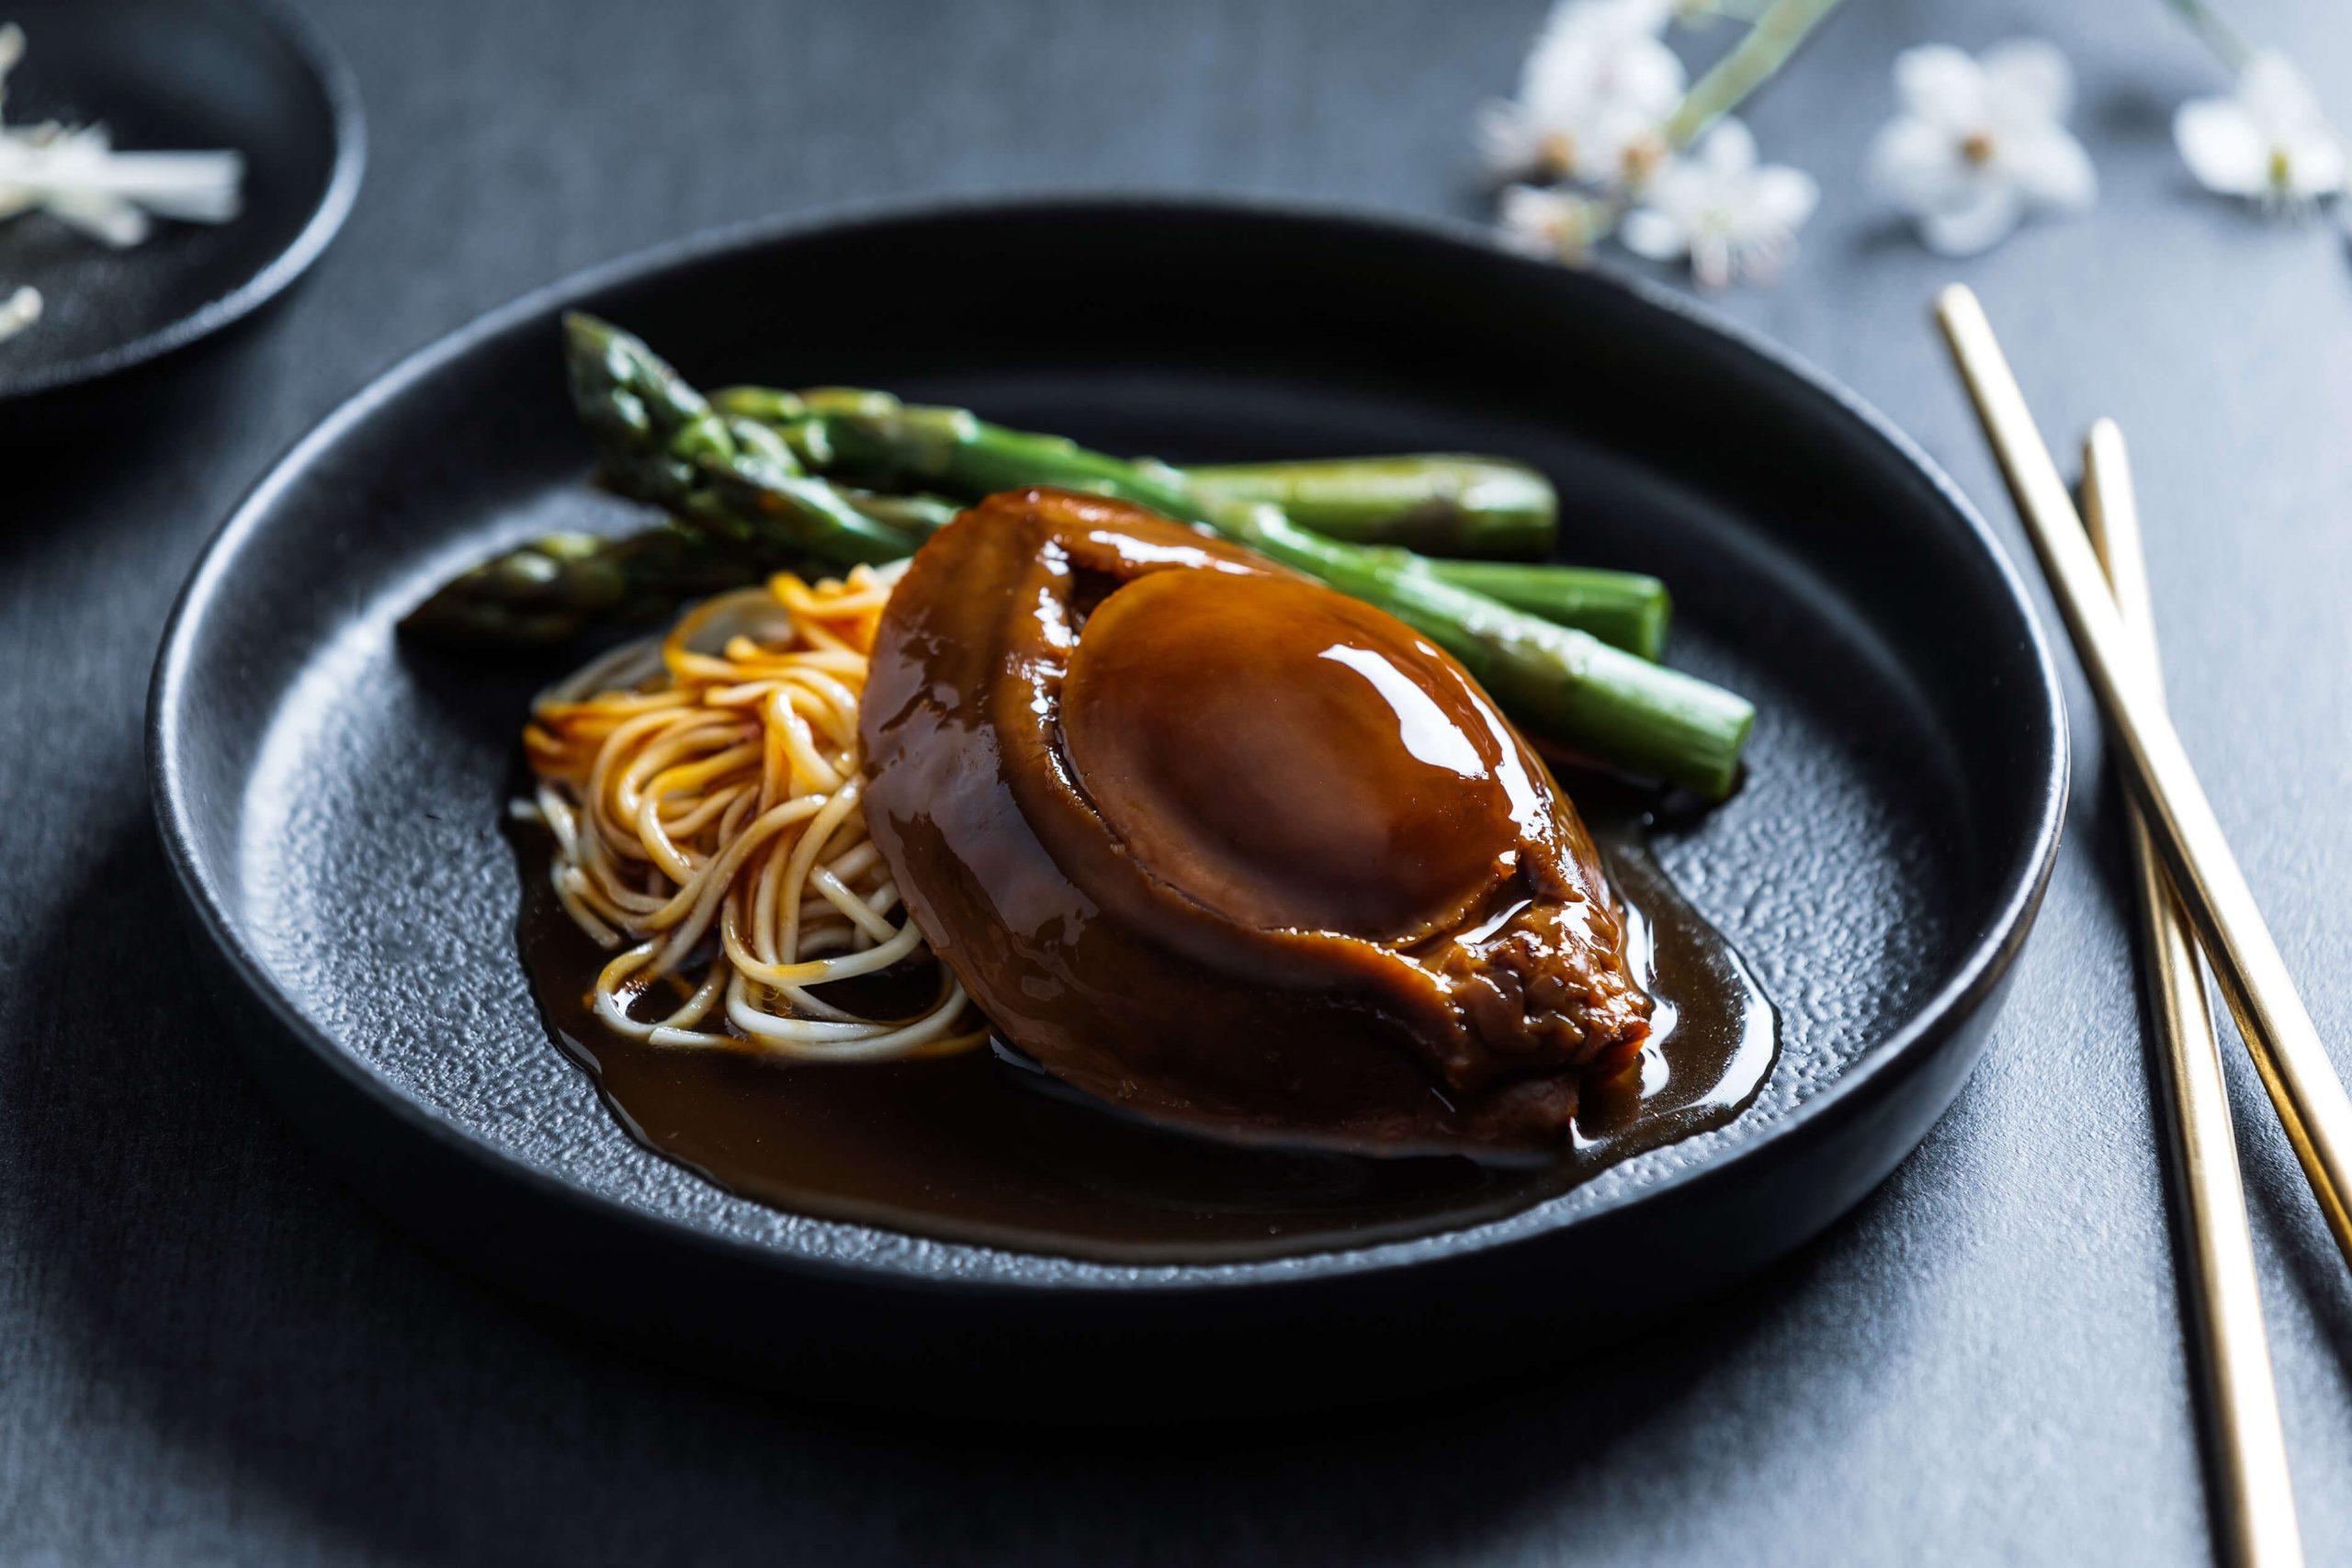 Braised abalone with sauce